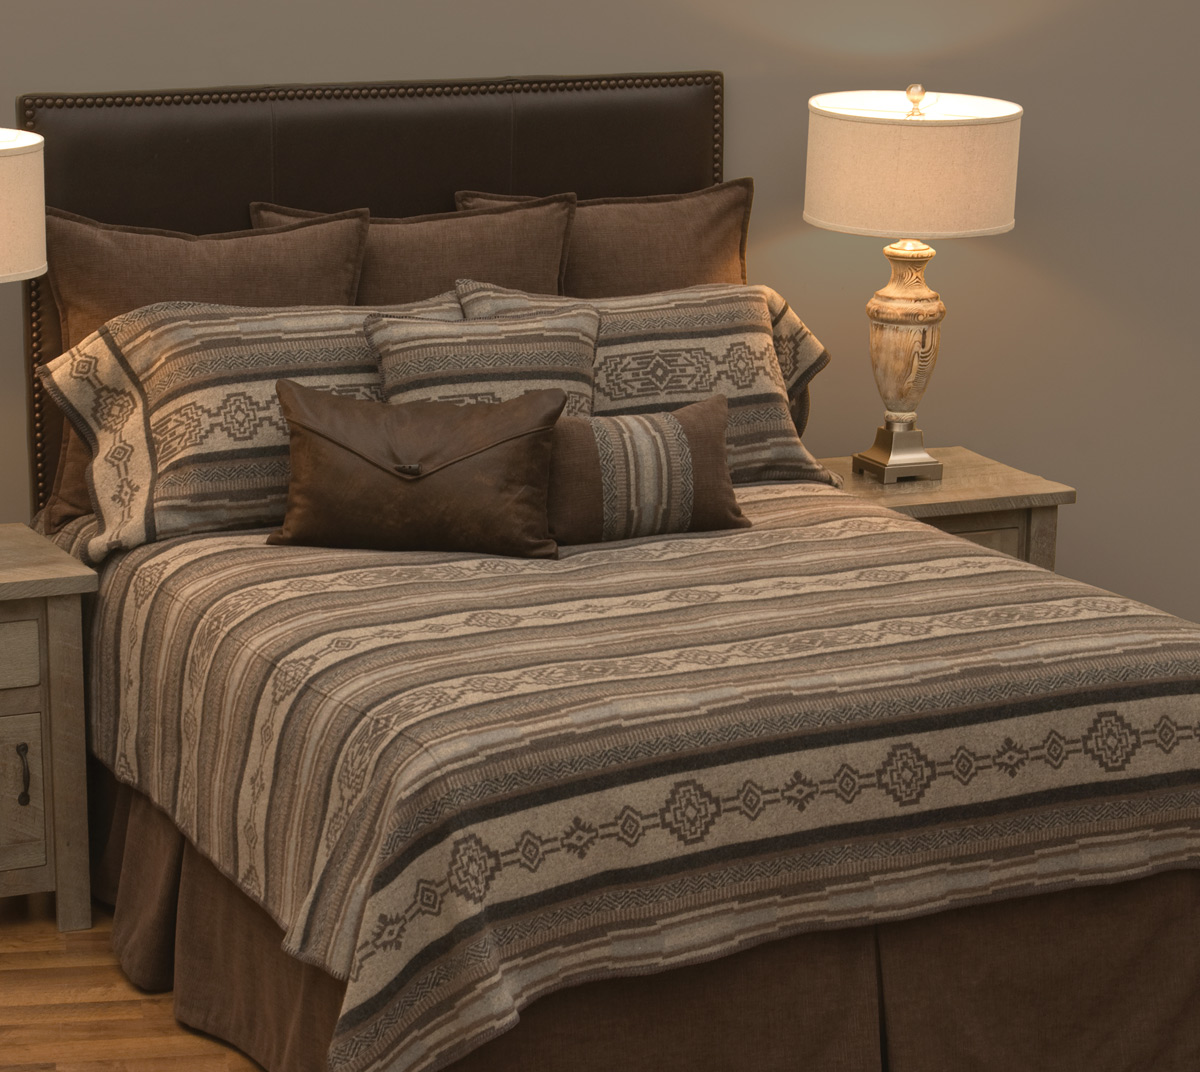 Black Forest Decor Lodge lux bedspread - super queen